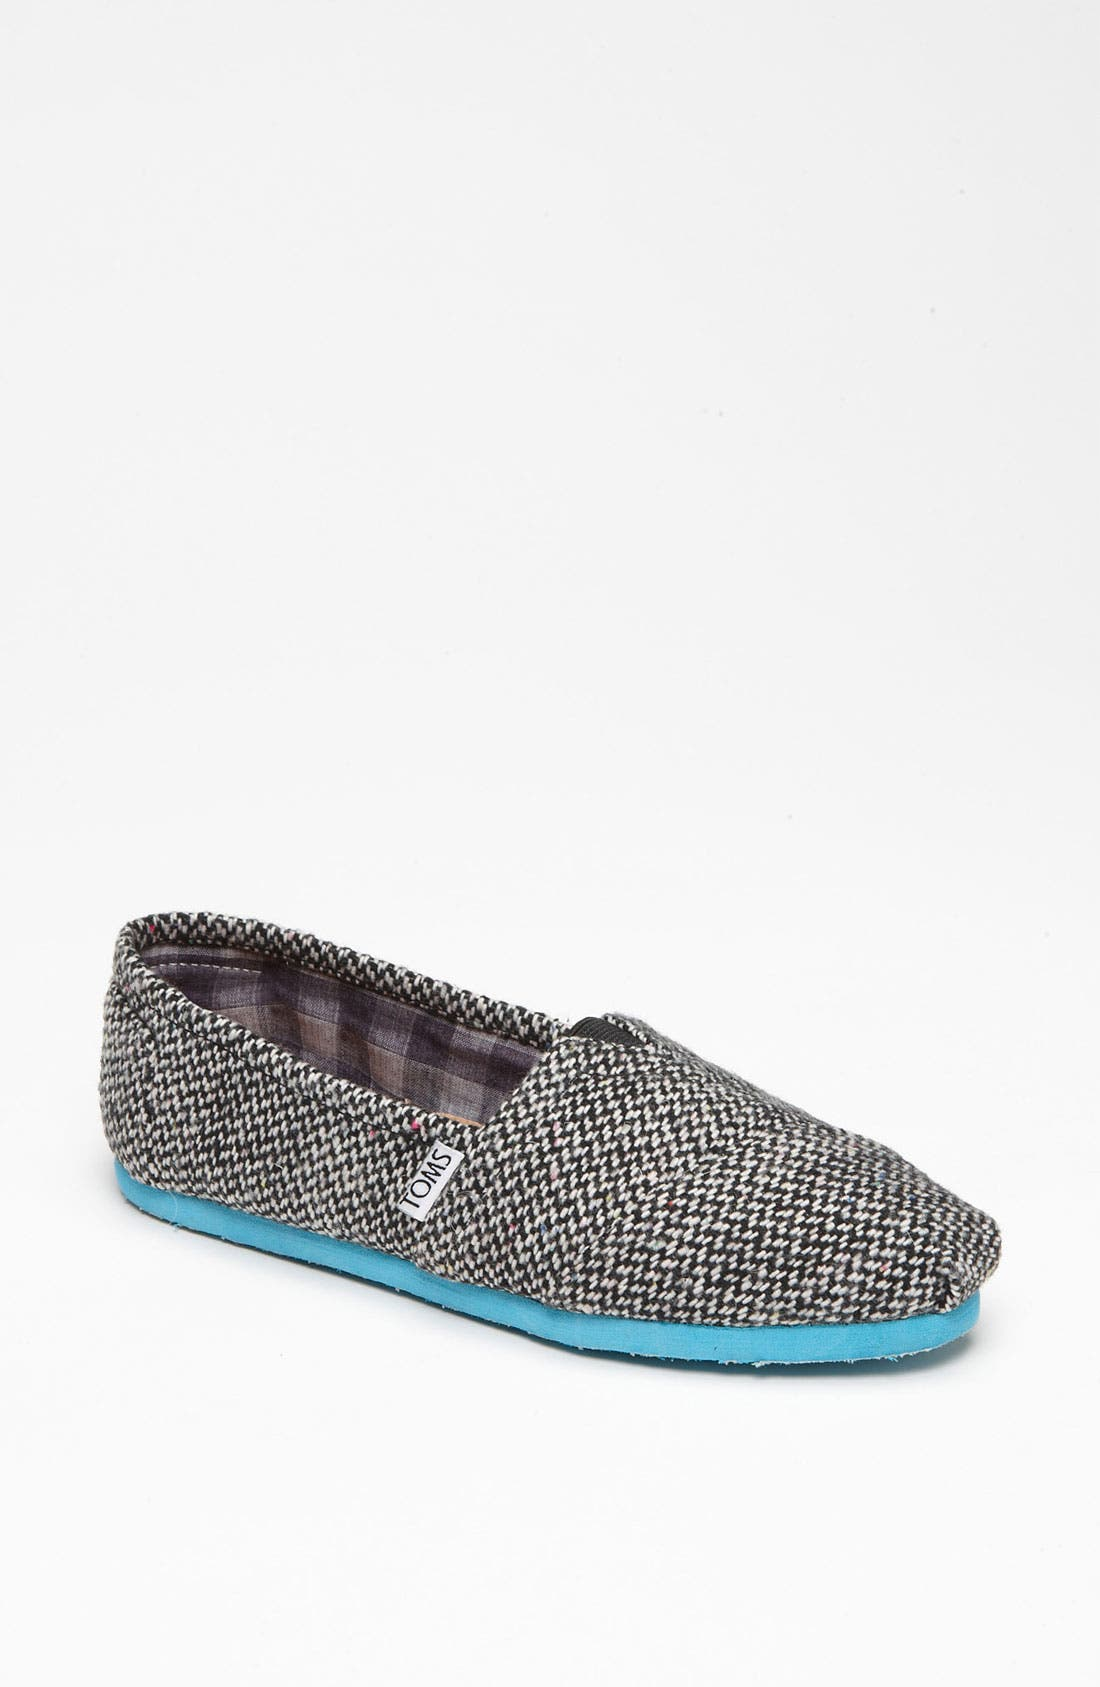 Main Image - TOMS 'Classic - Fleckpop' Slip-On (Women) (Nordstrom Exclusive)